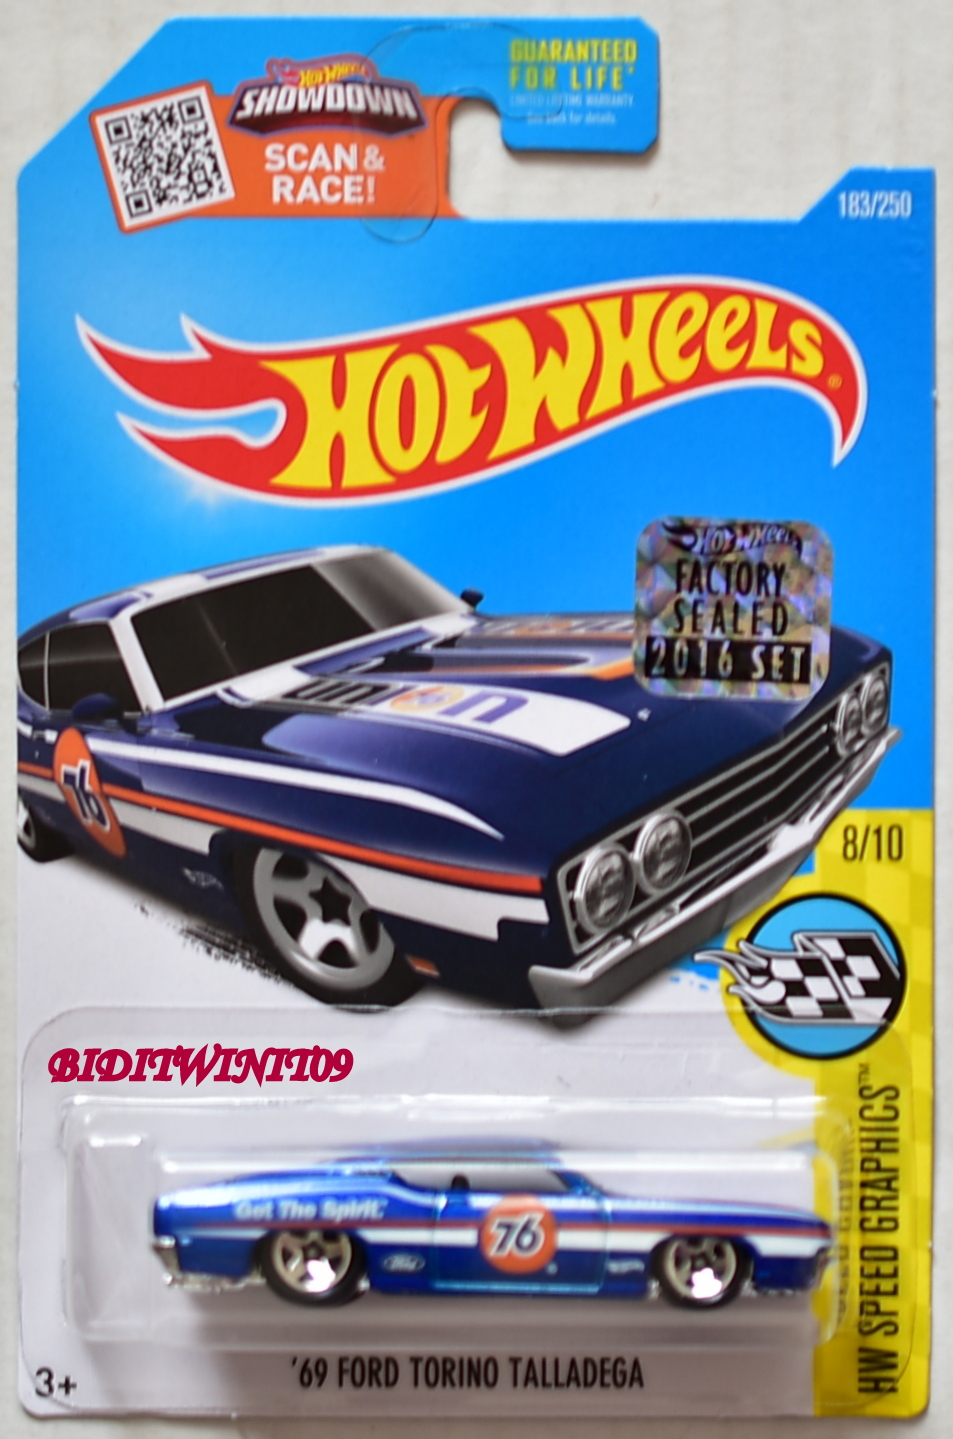 HOT WHEELS 2016 SPEED GRAPHICS '69 FORD TORINO TALLADEGA BLUE FACTORY SEALED